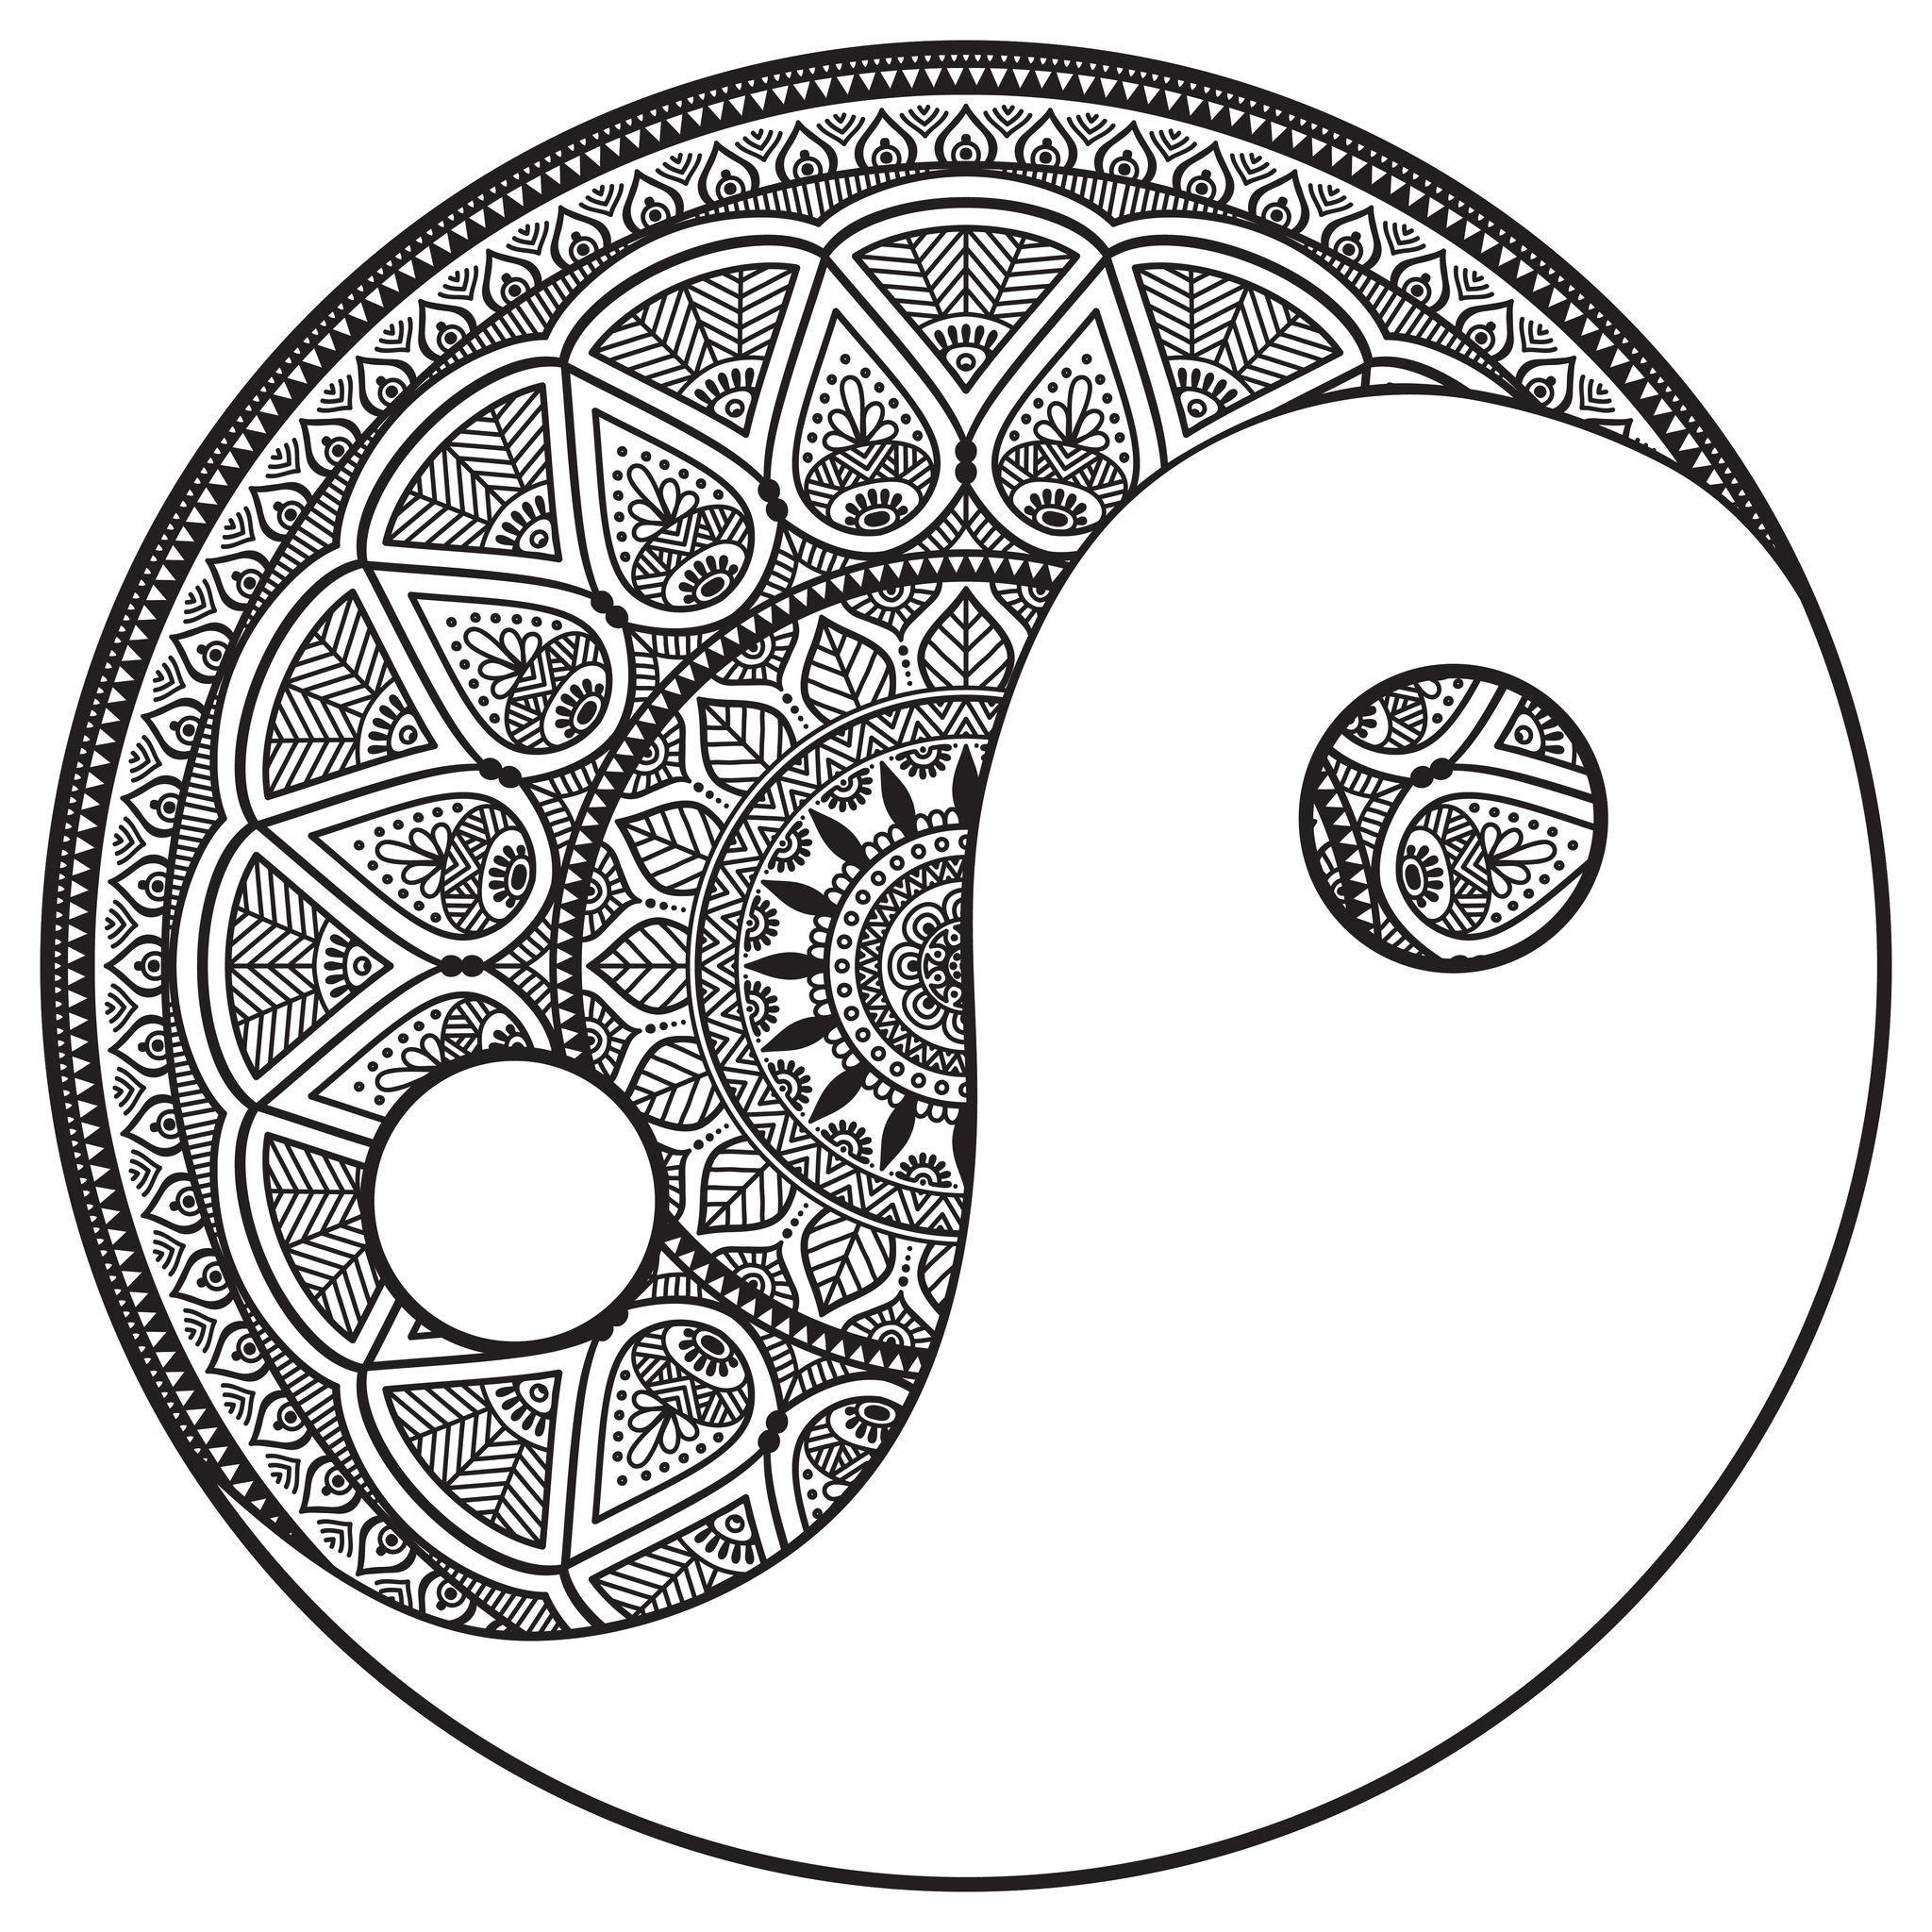 mandala art coloring pages M&alas Adult Coloring Pages mandala art coloring pages